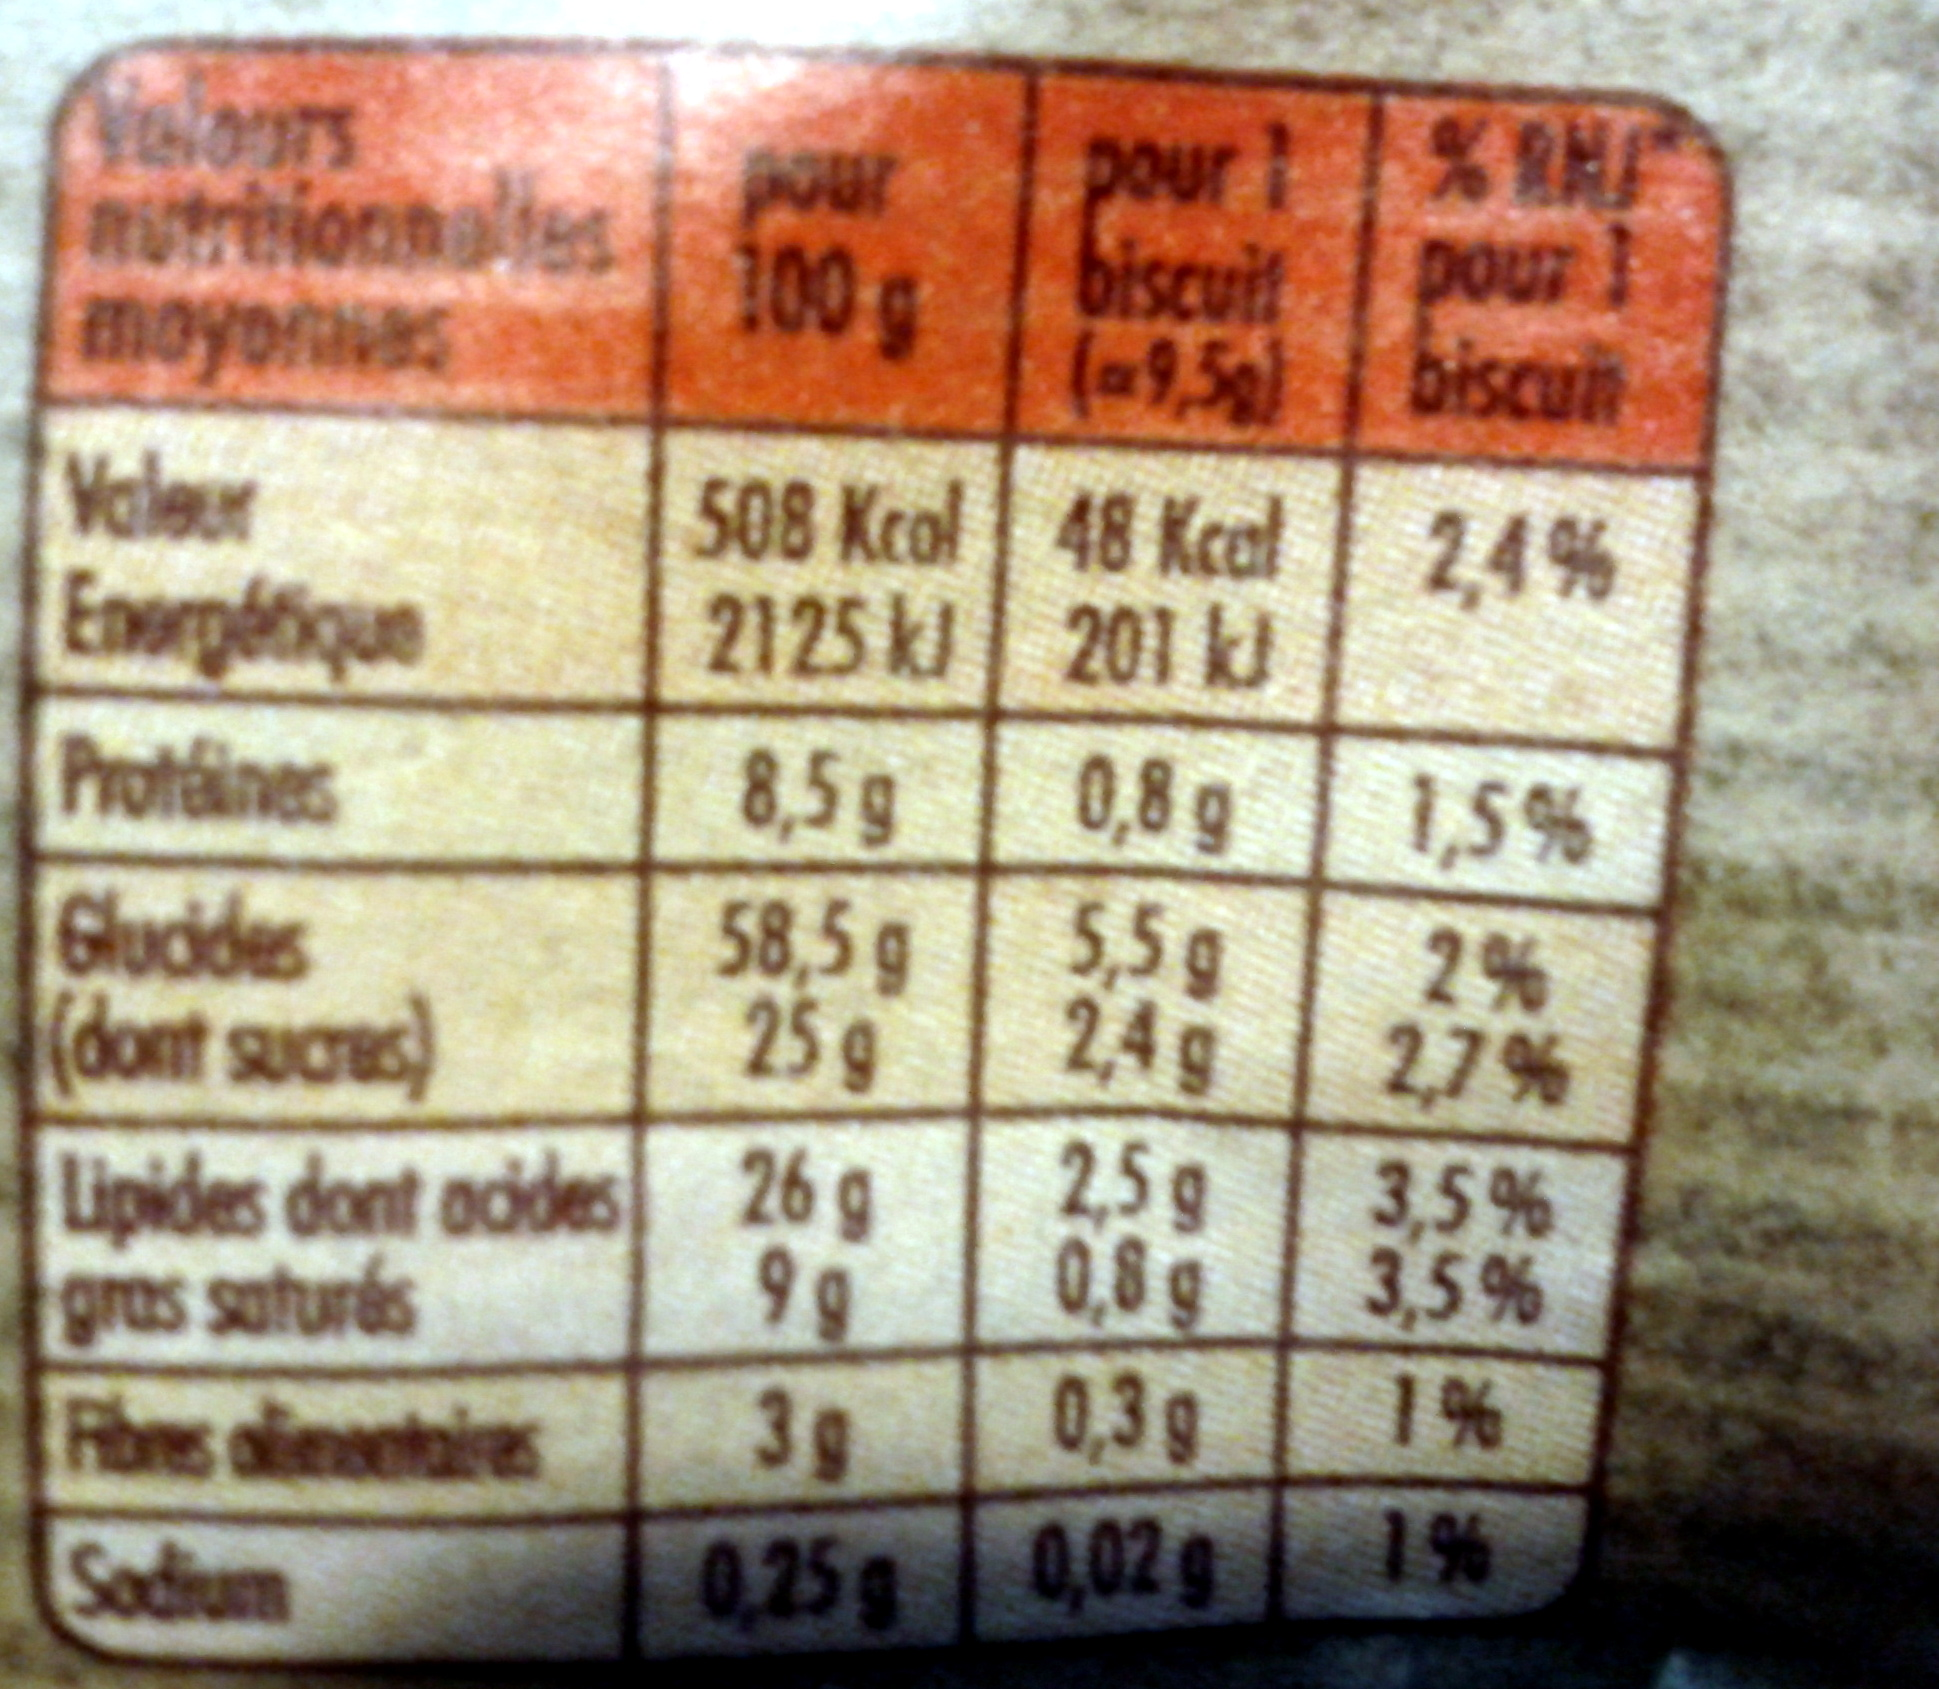 Cocottes - Nutrition facts